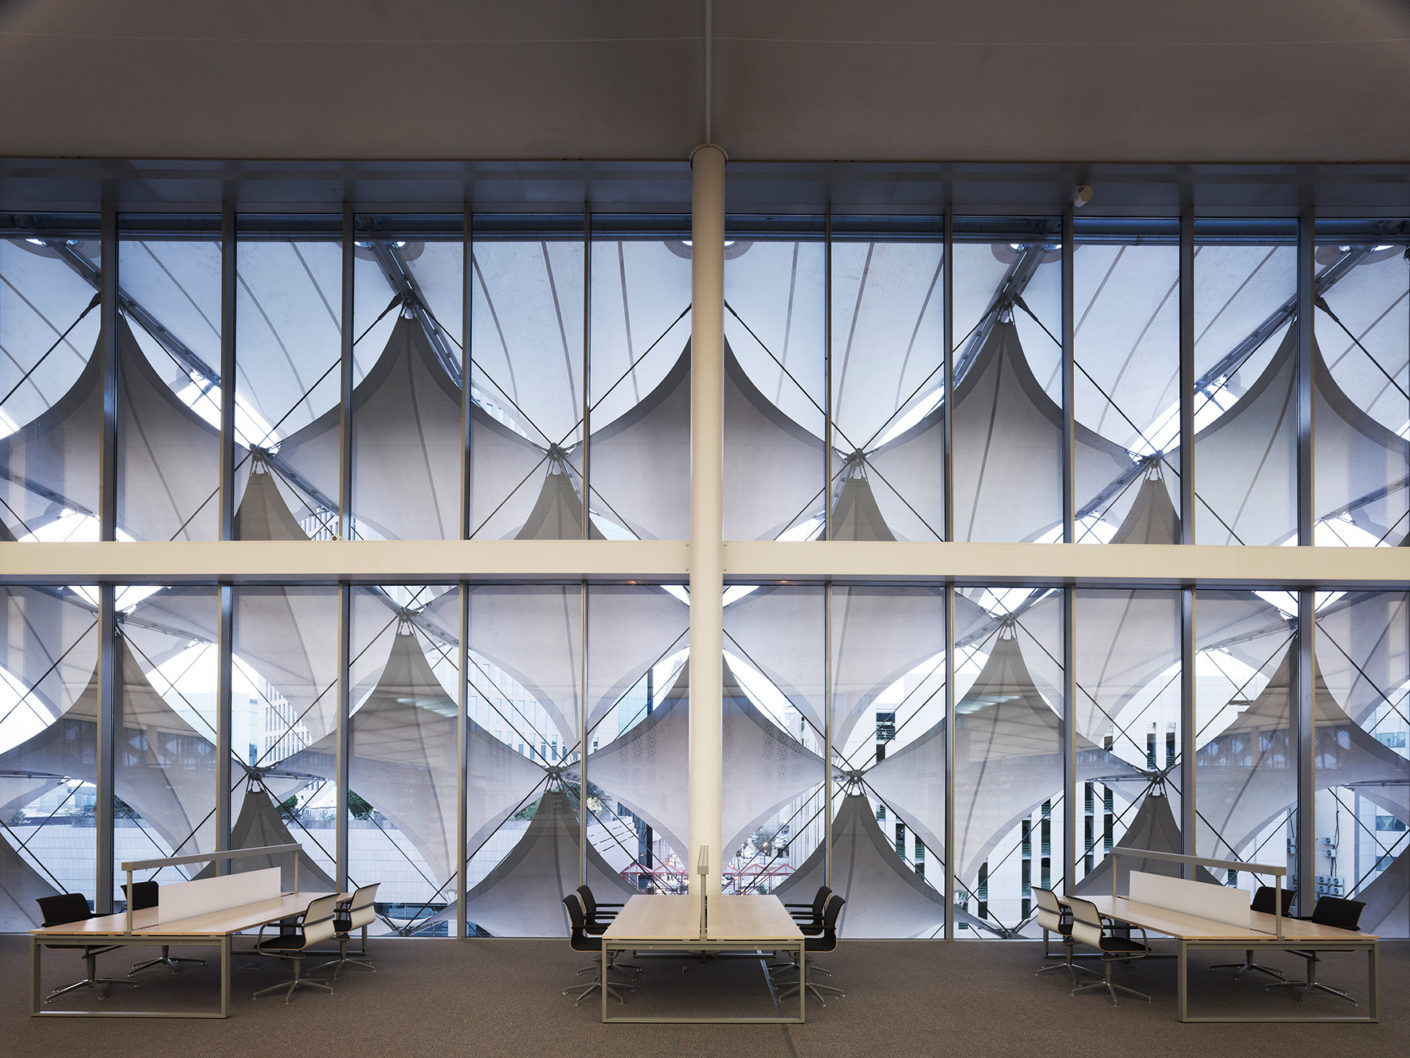 The awnings in front of the glass façade are reminiscent of Arabic tent constructions.